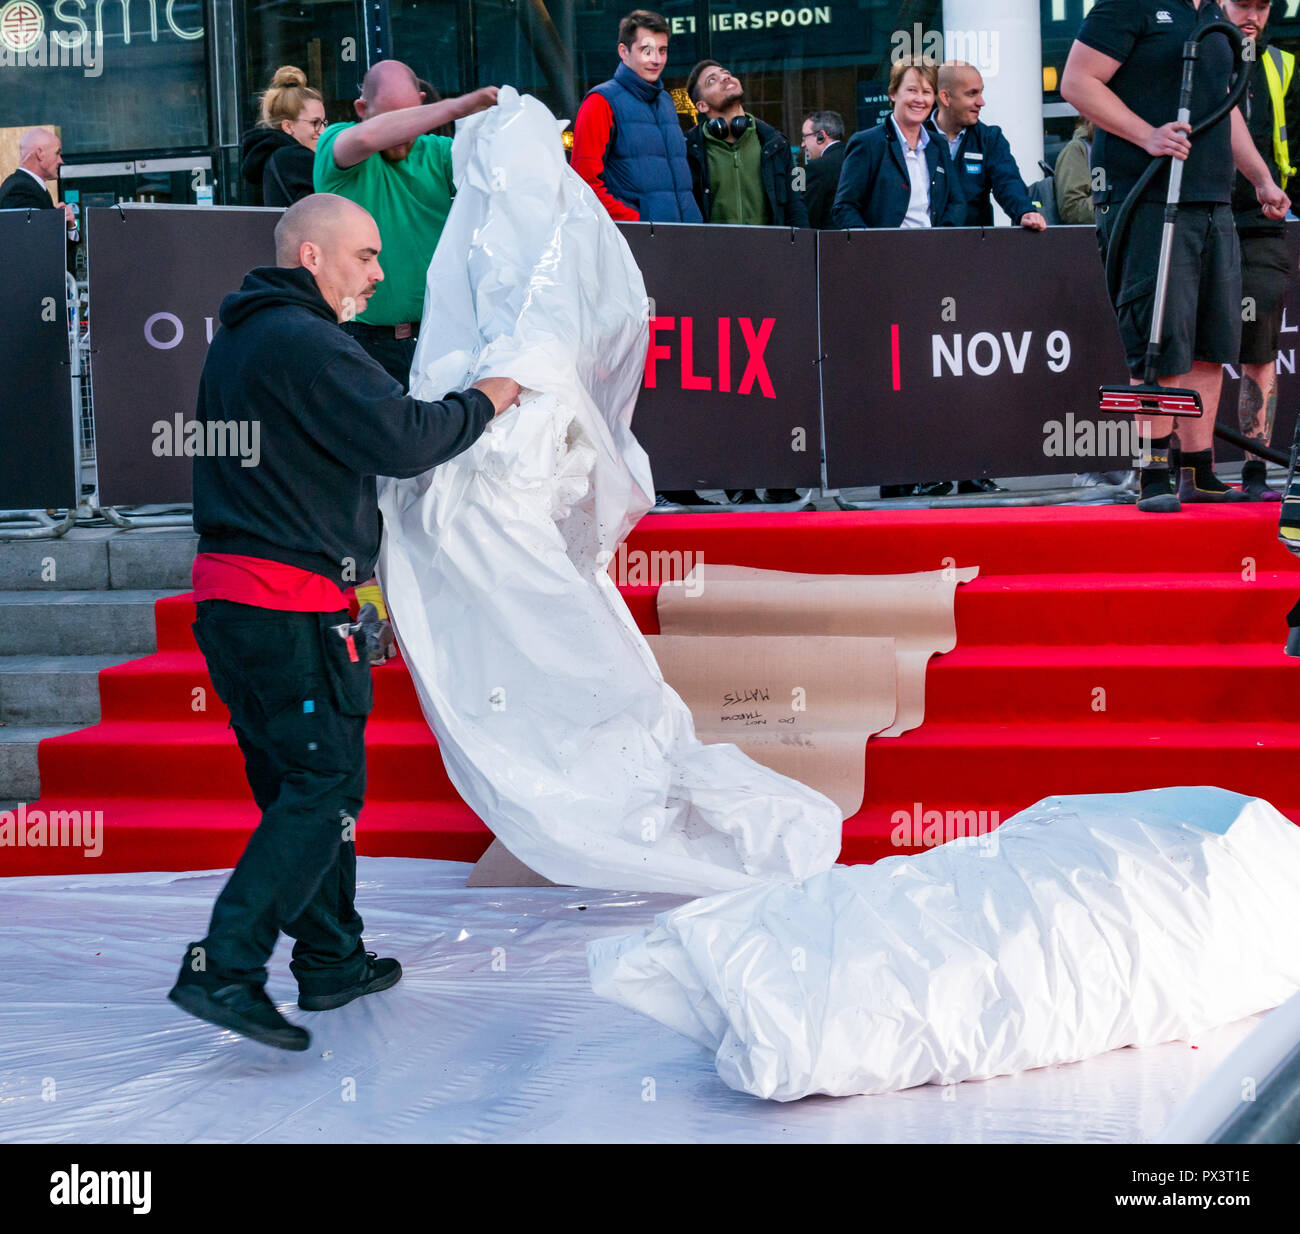 Vue Omni, Leith Walk, Edinburgh, Scotland, United Kingdom, 19th October 2018. Stars attend the Scottish premiere of Netflix Outlaw King. The red carpet is laid out the for the cast and team producing Netflix's latest blockbuster film, Last minute preparations preparing the red carpet - Stock Image